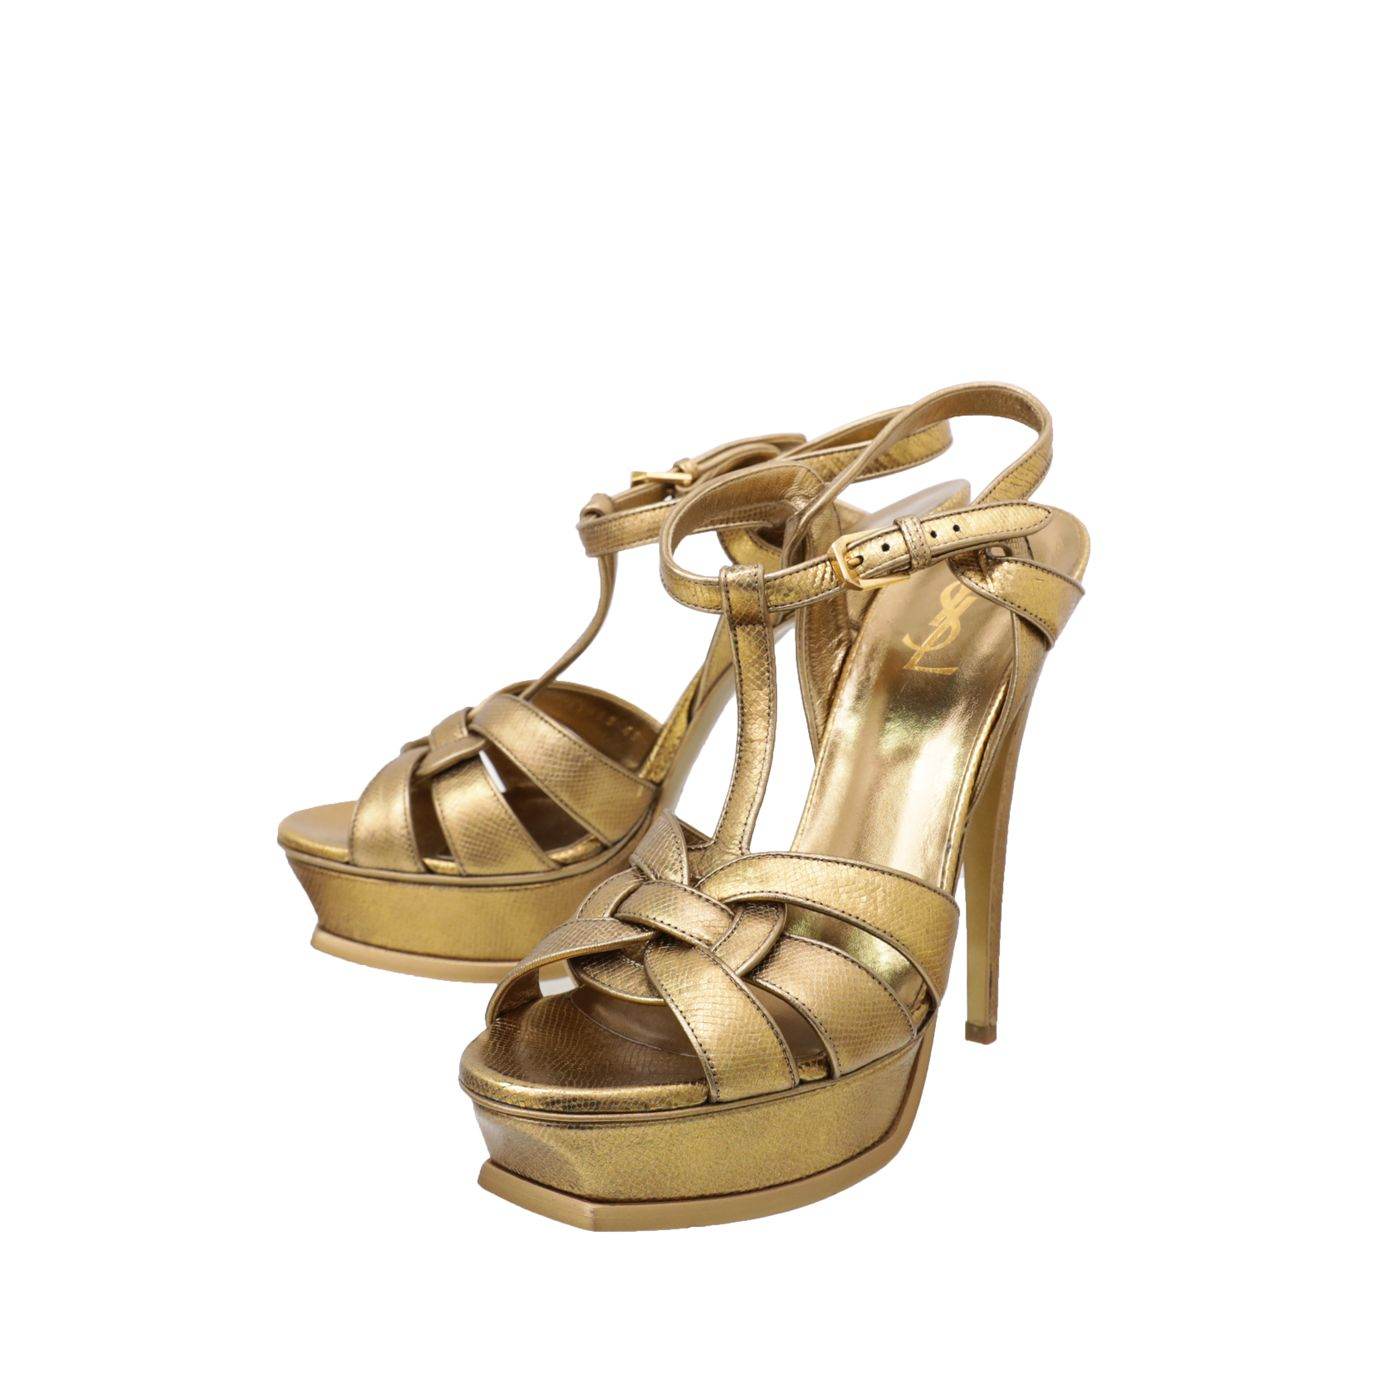 YSL Metallic Gold Tribute High Heeled Sandals 40